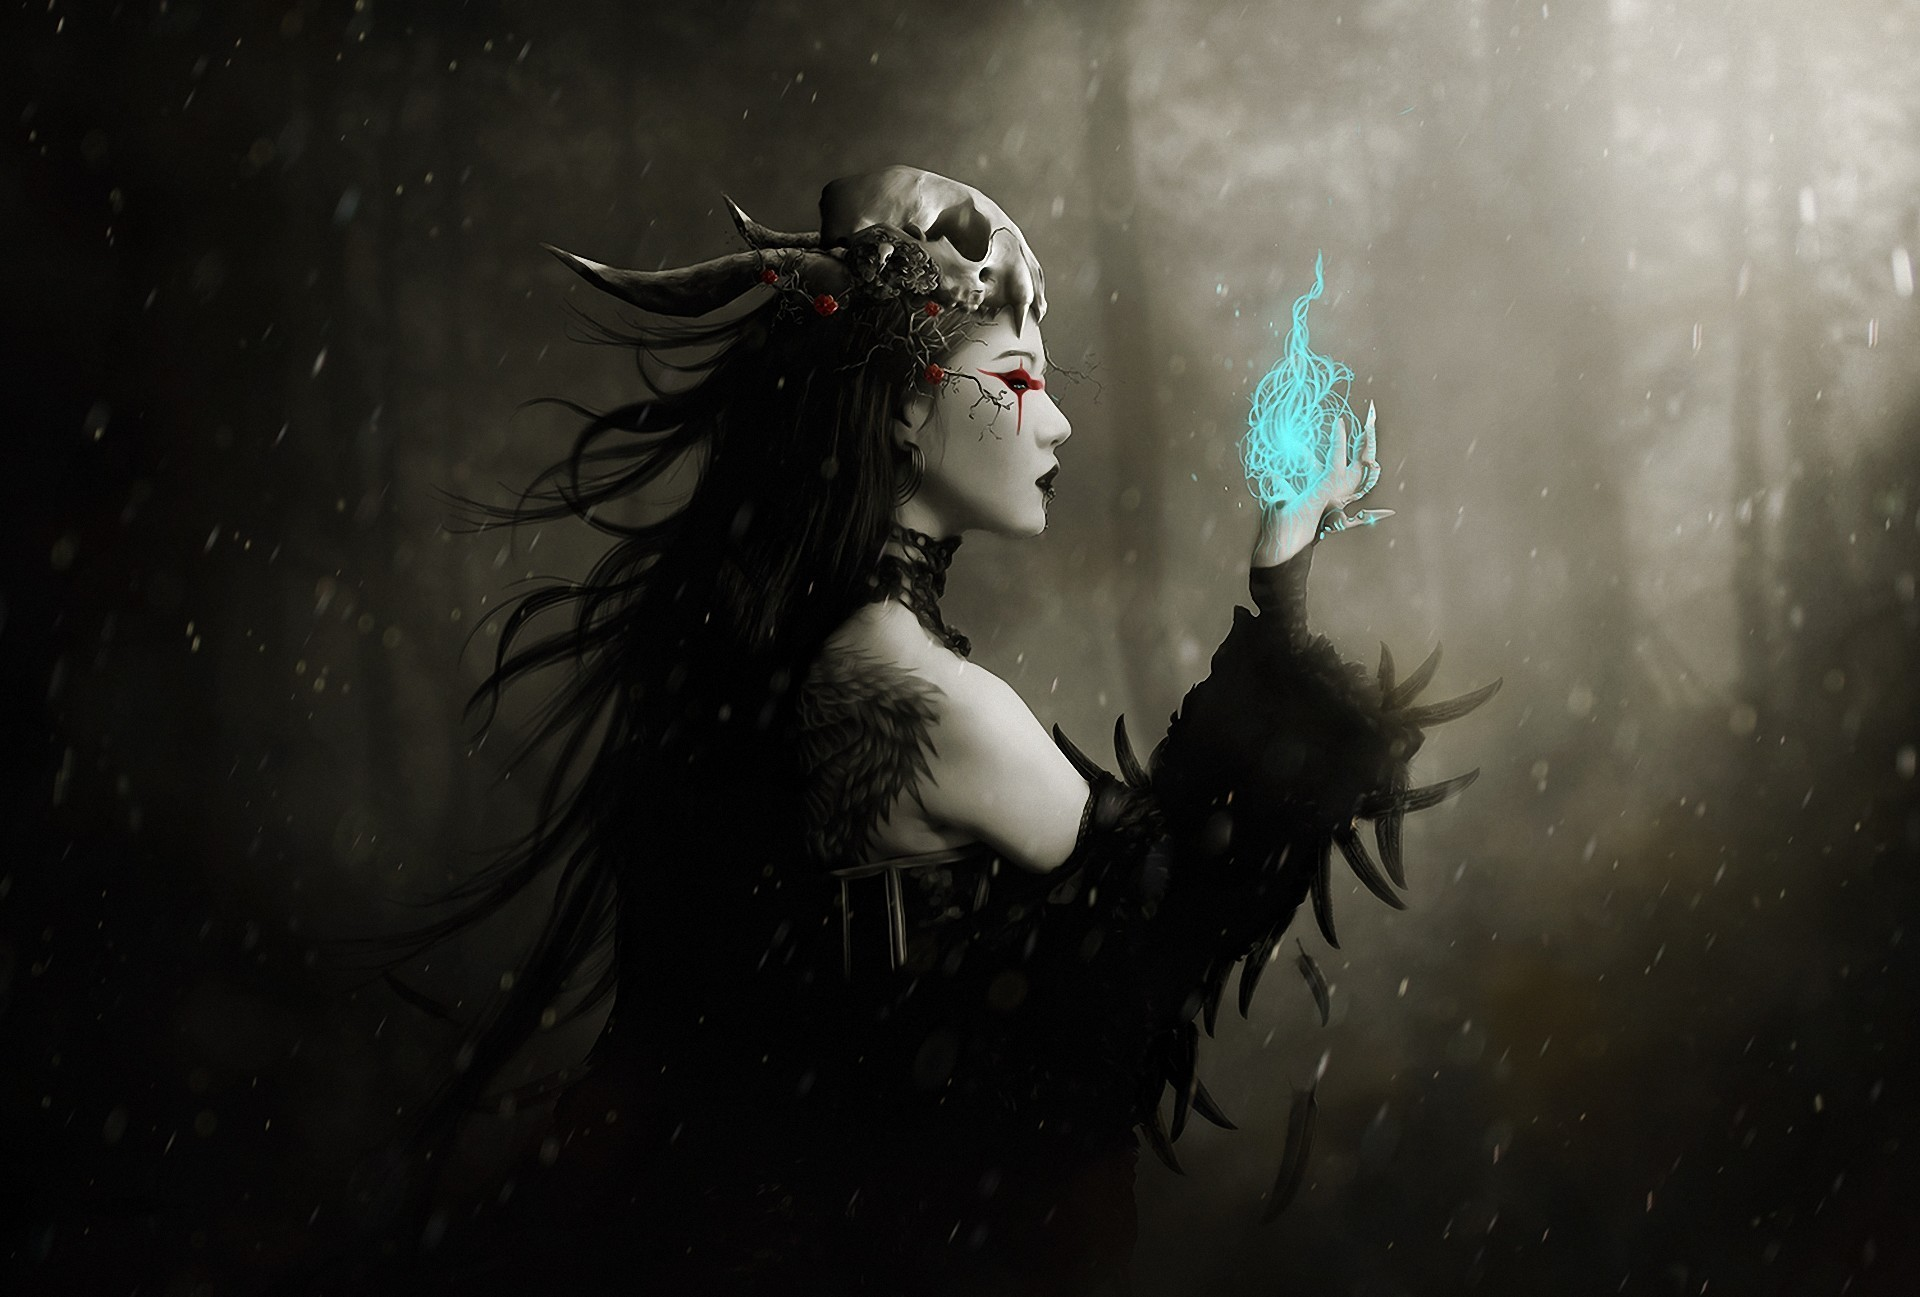 gothic dark fantasy art witch magic spell occult skull women females mood winter snow flakes drops trees forest woods spooky scary evil